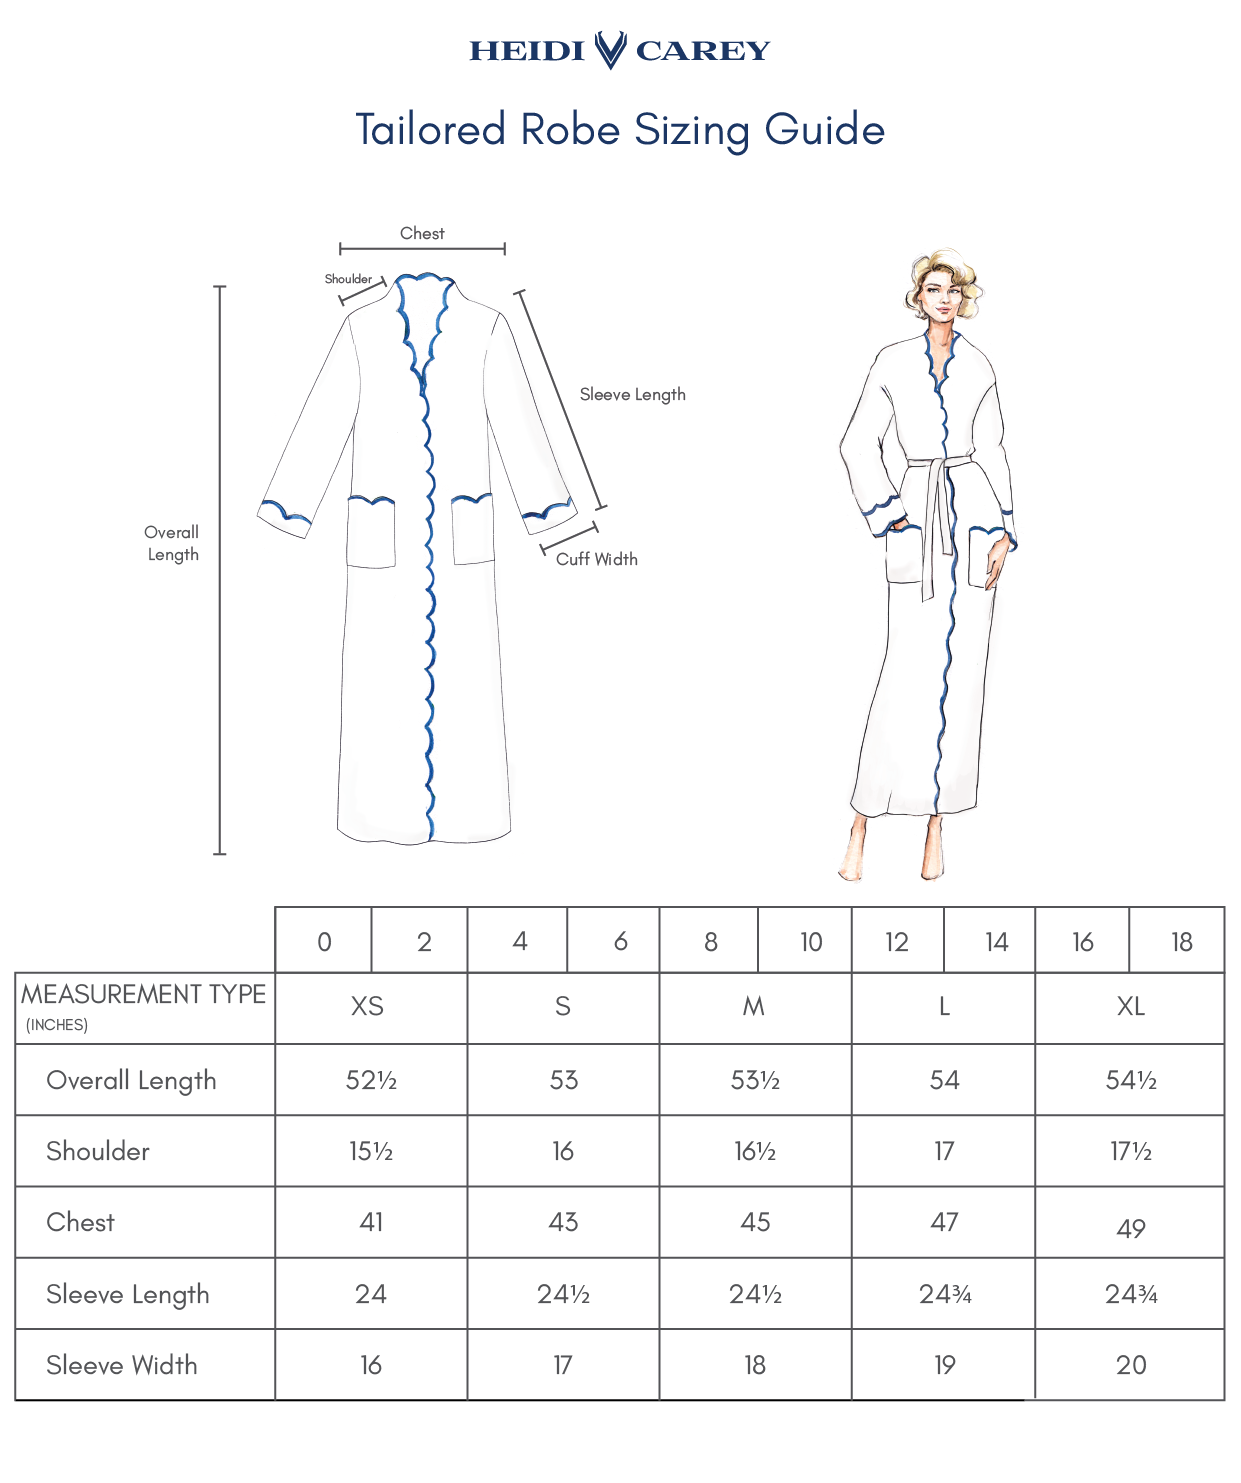 Tailored Robe Sizing Guide